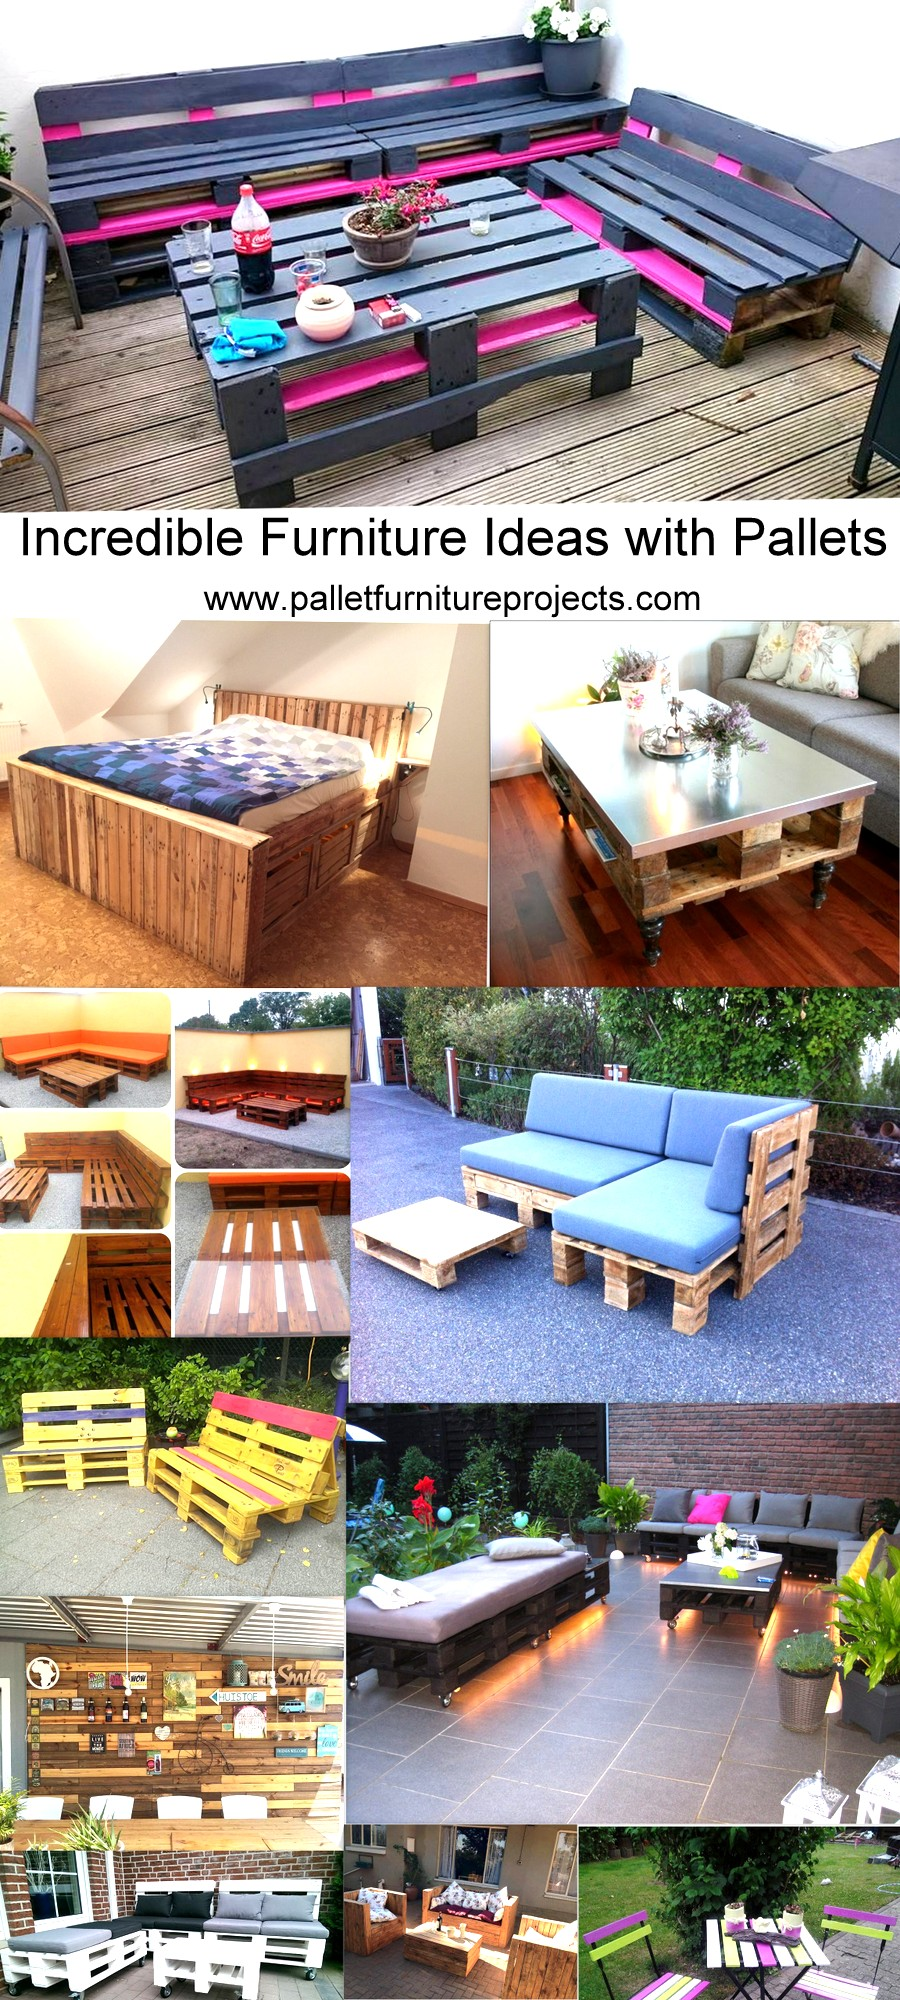 Mattresses Near Me Incredible Furniture Ideas with Pallets | Pallet Furniture ...